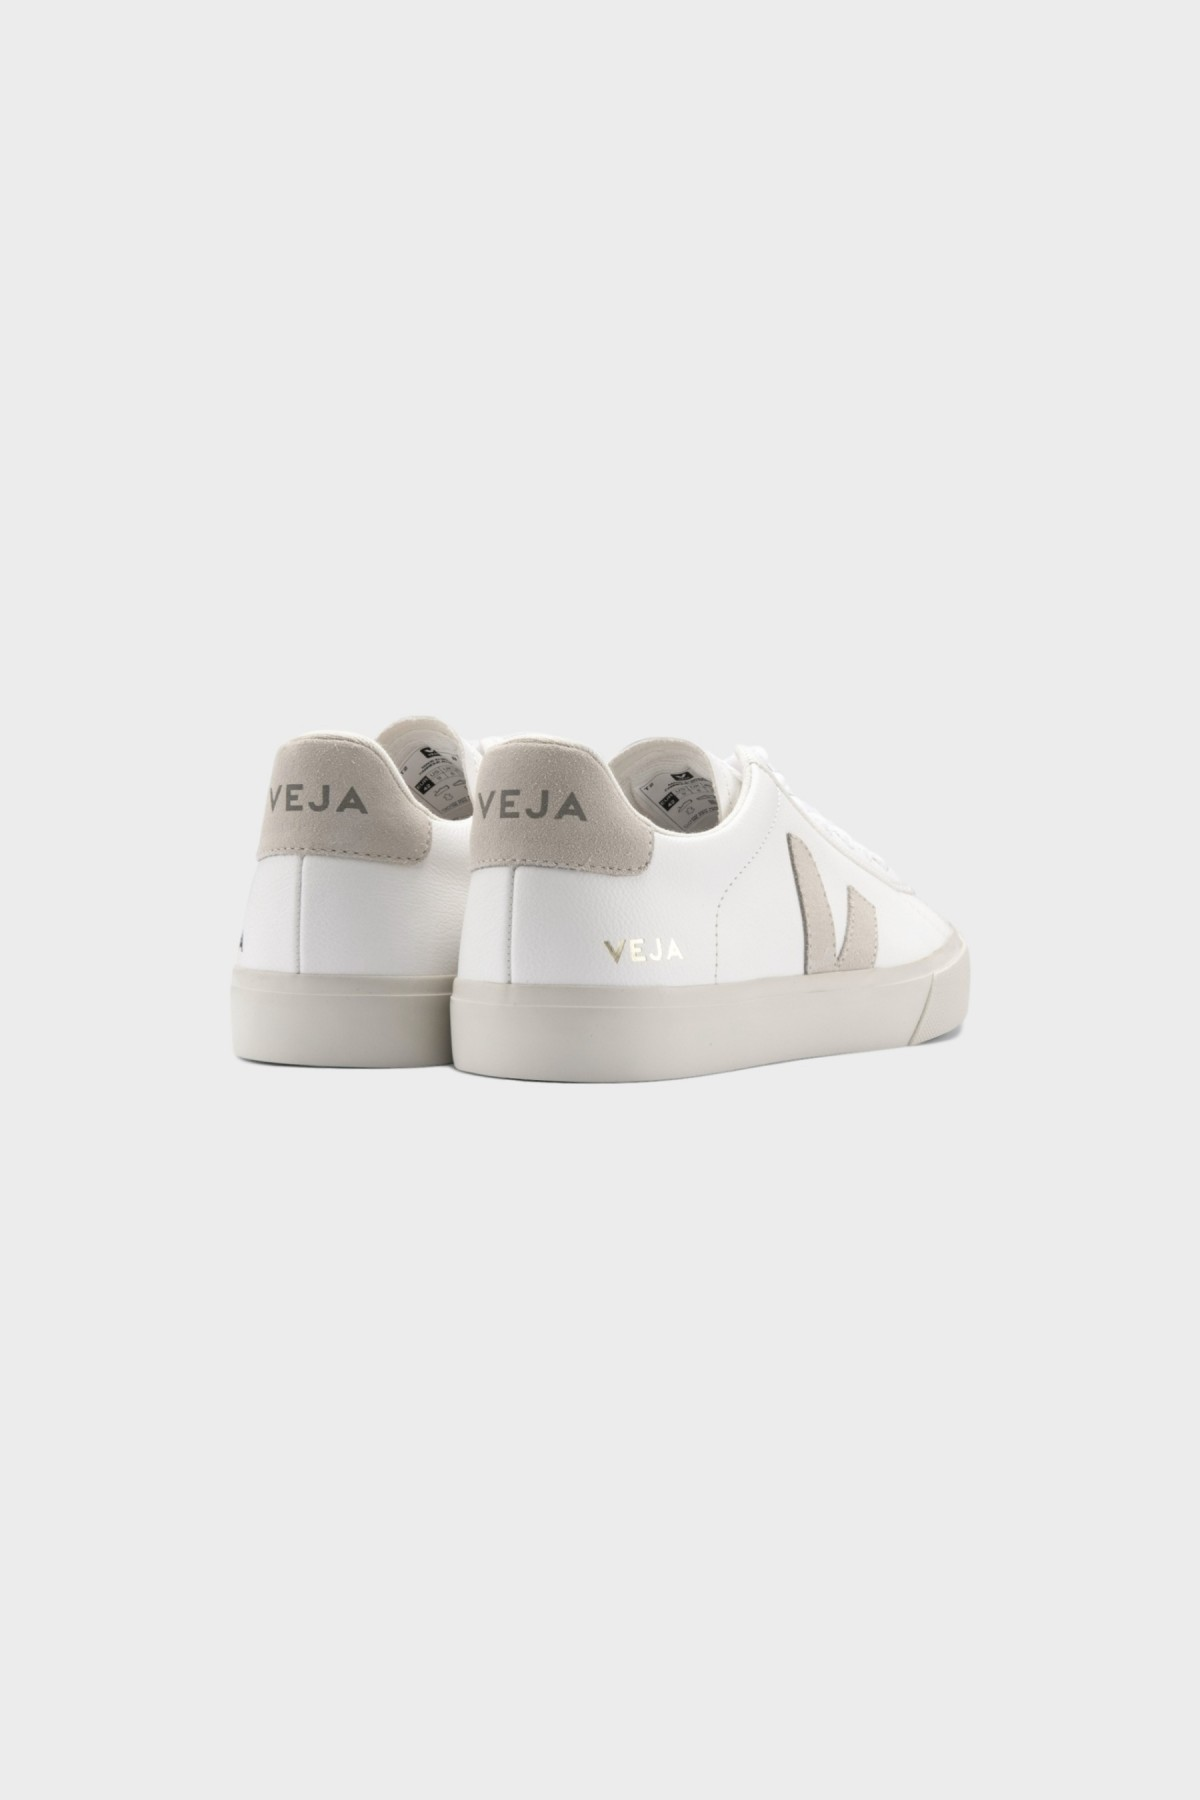 Veja Campo Chromefree in Extra White Natural Suede